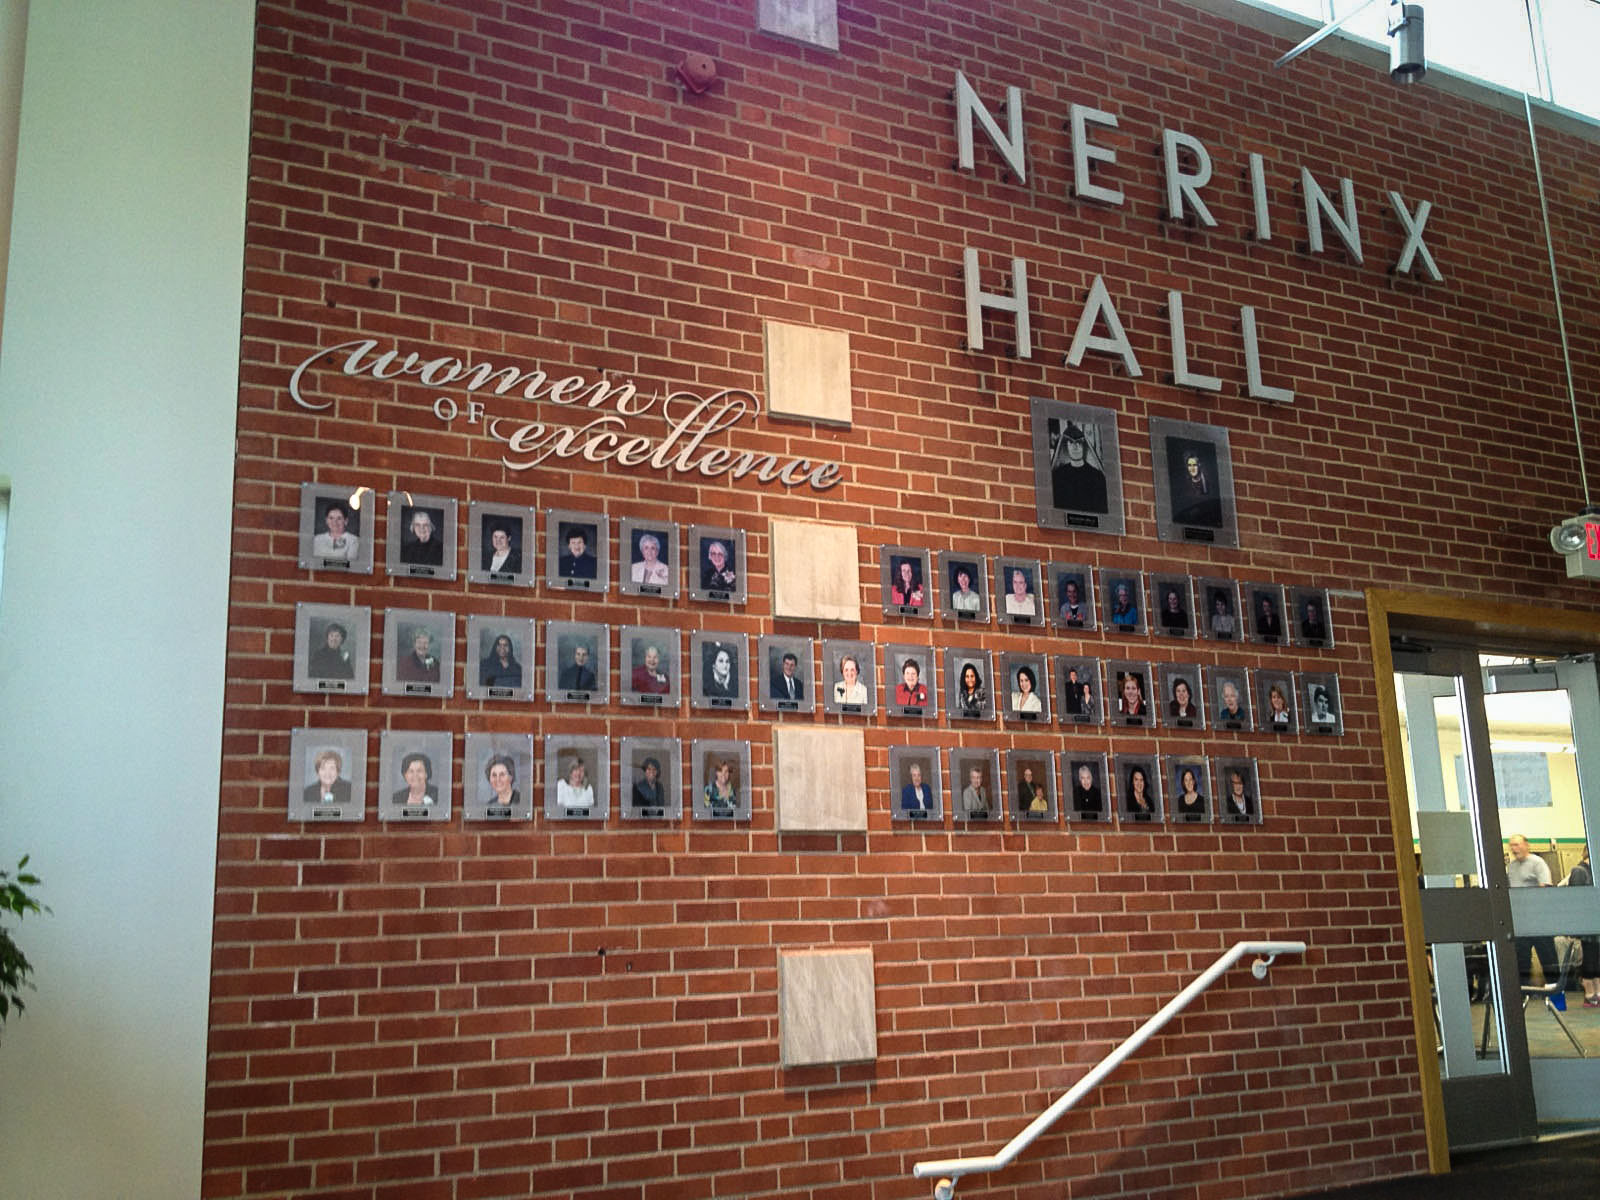 Nerinx Hall Women of Excellence Wall